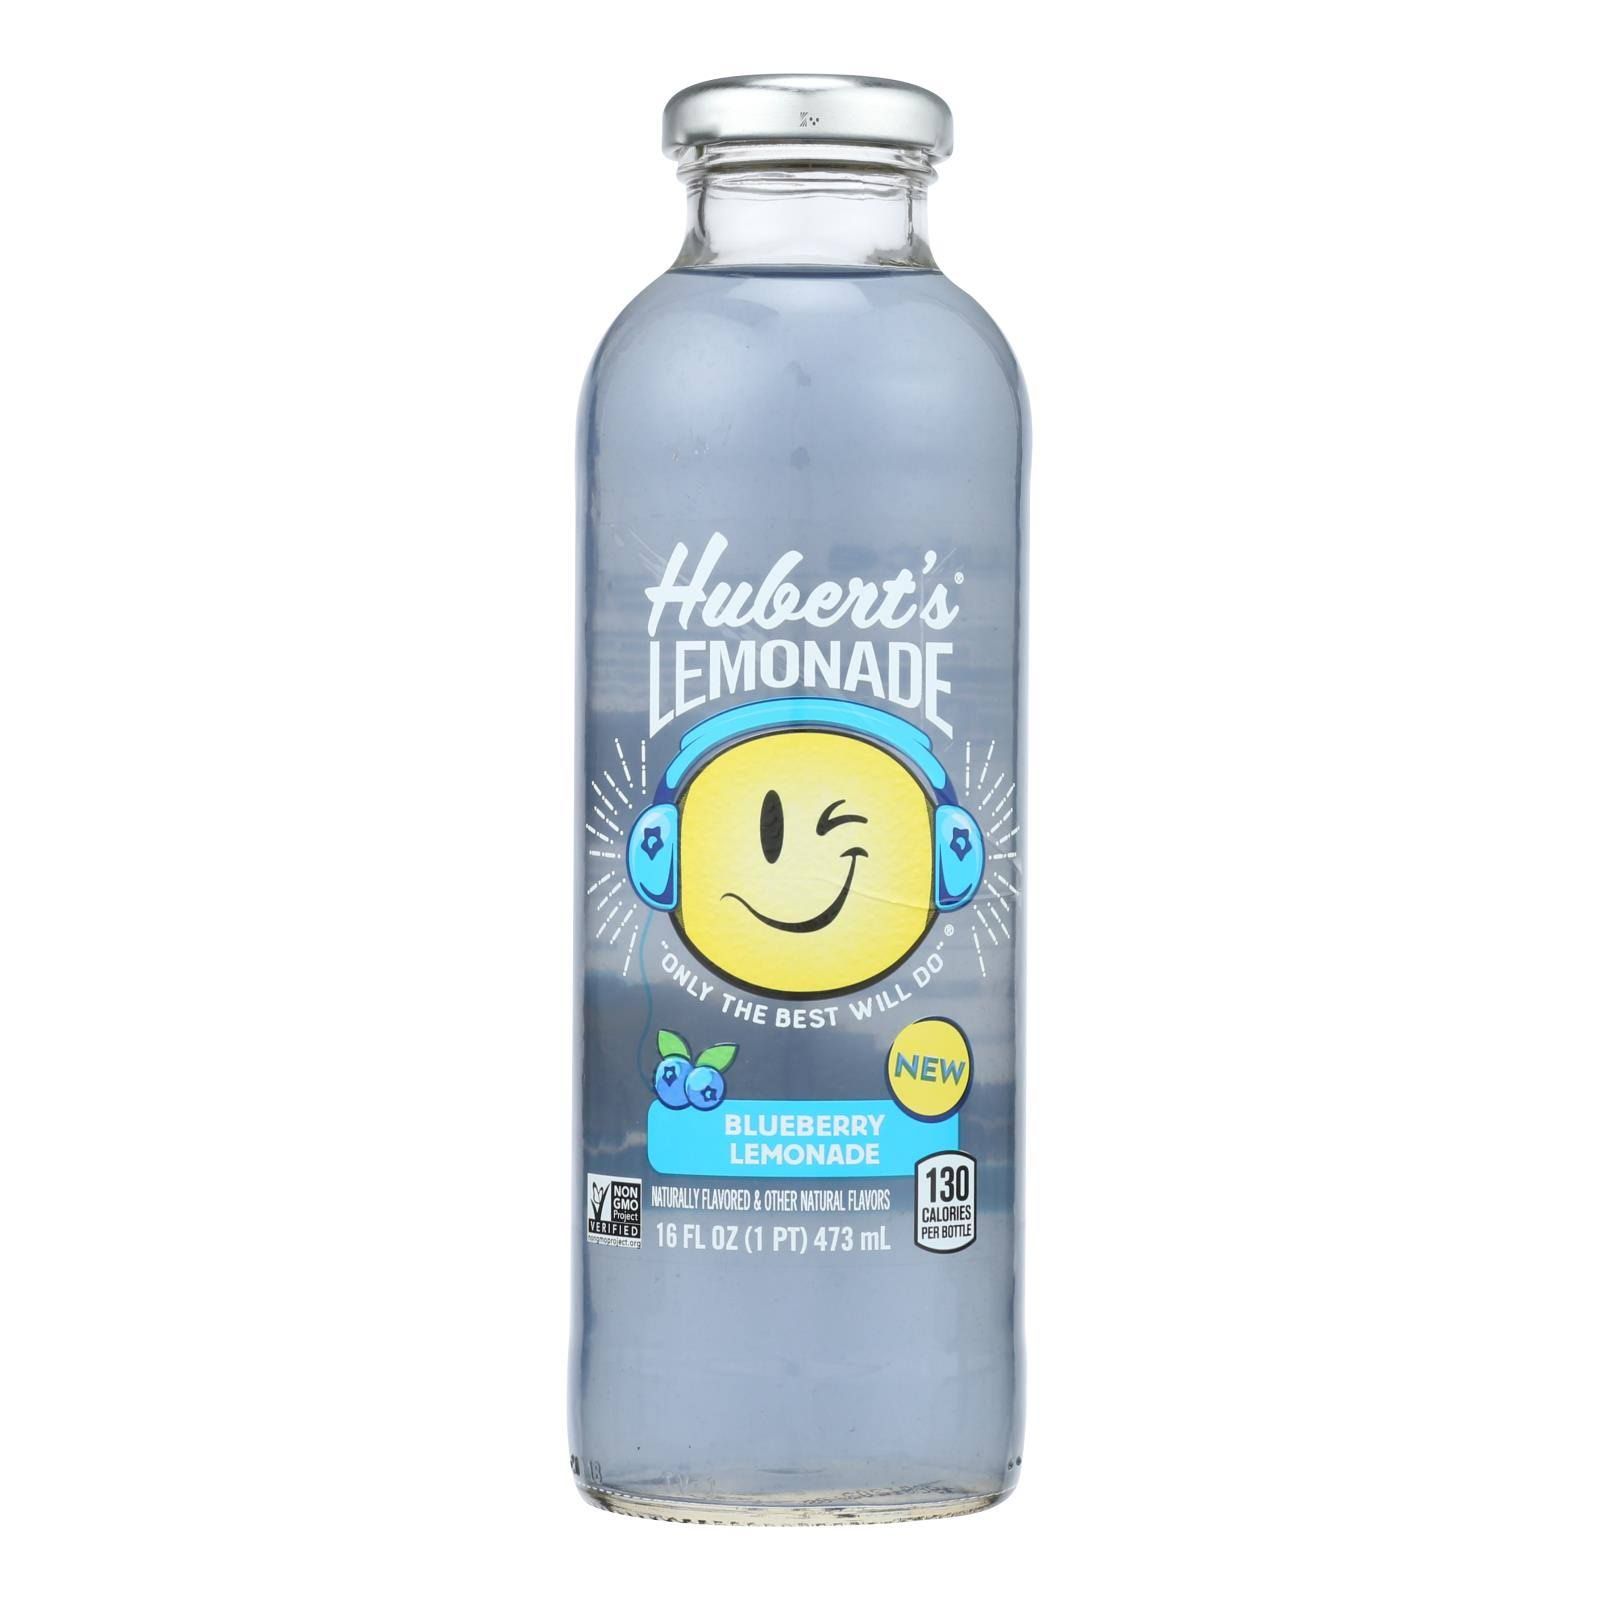 Hubert's - Lemonade Blueberry - Case of 12 - 16 FZ